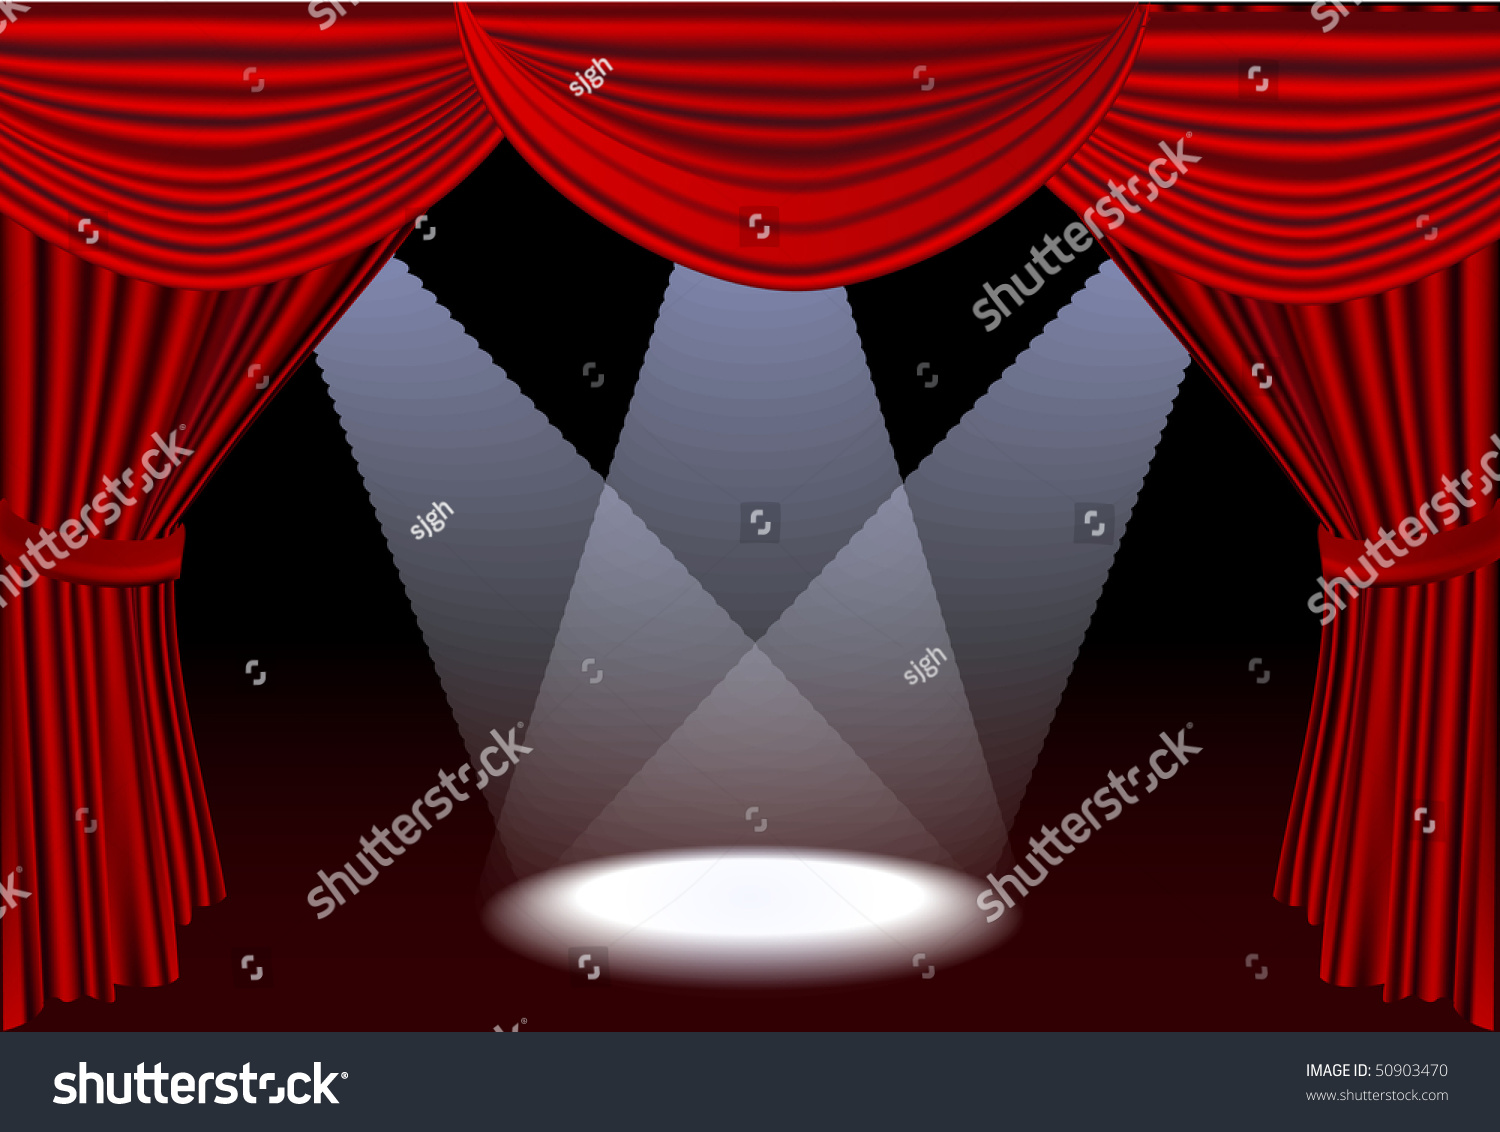 Red stage curtains open - Open Red Stage Curtains With Three Spotlights